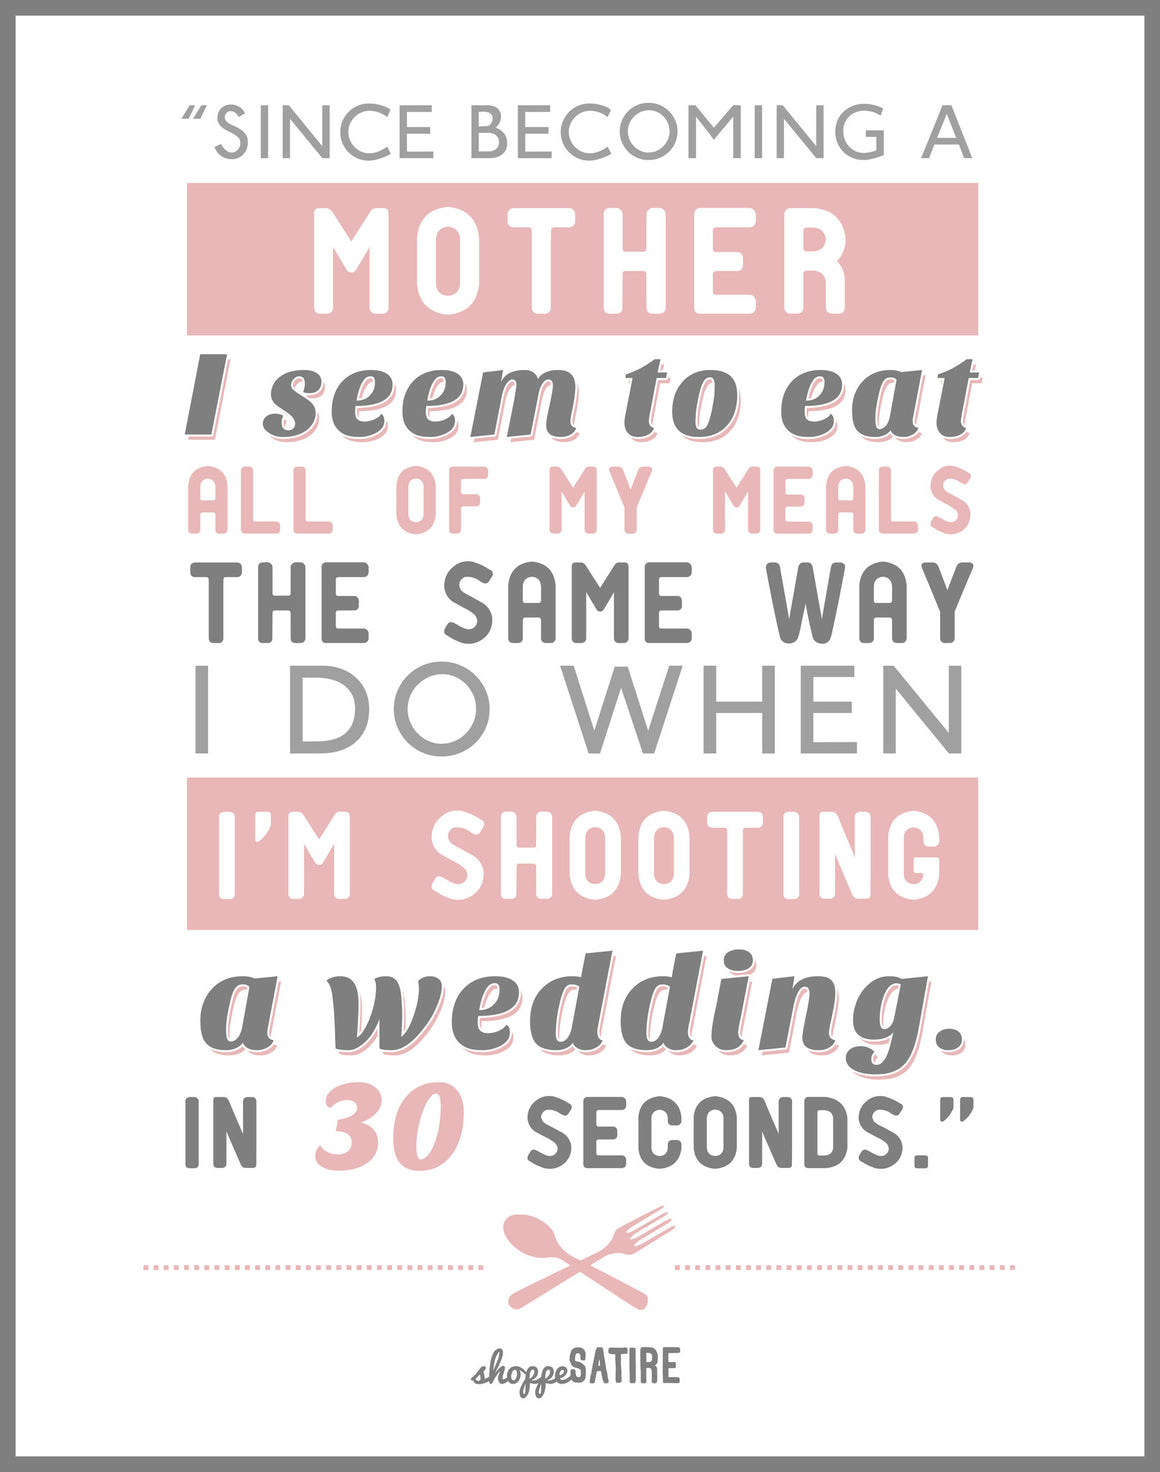 Shoppe Satire ~ Weddings & Children